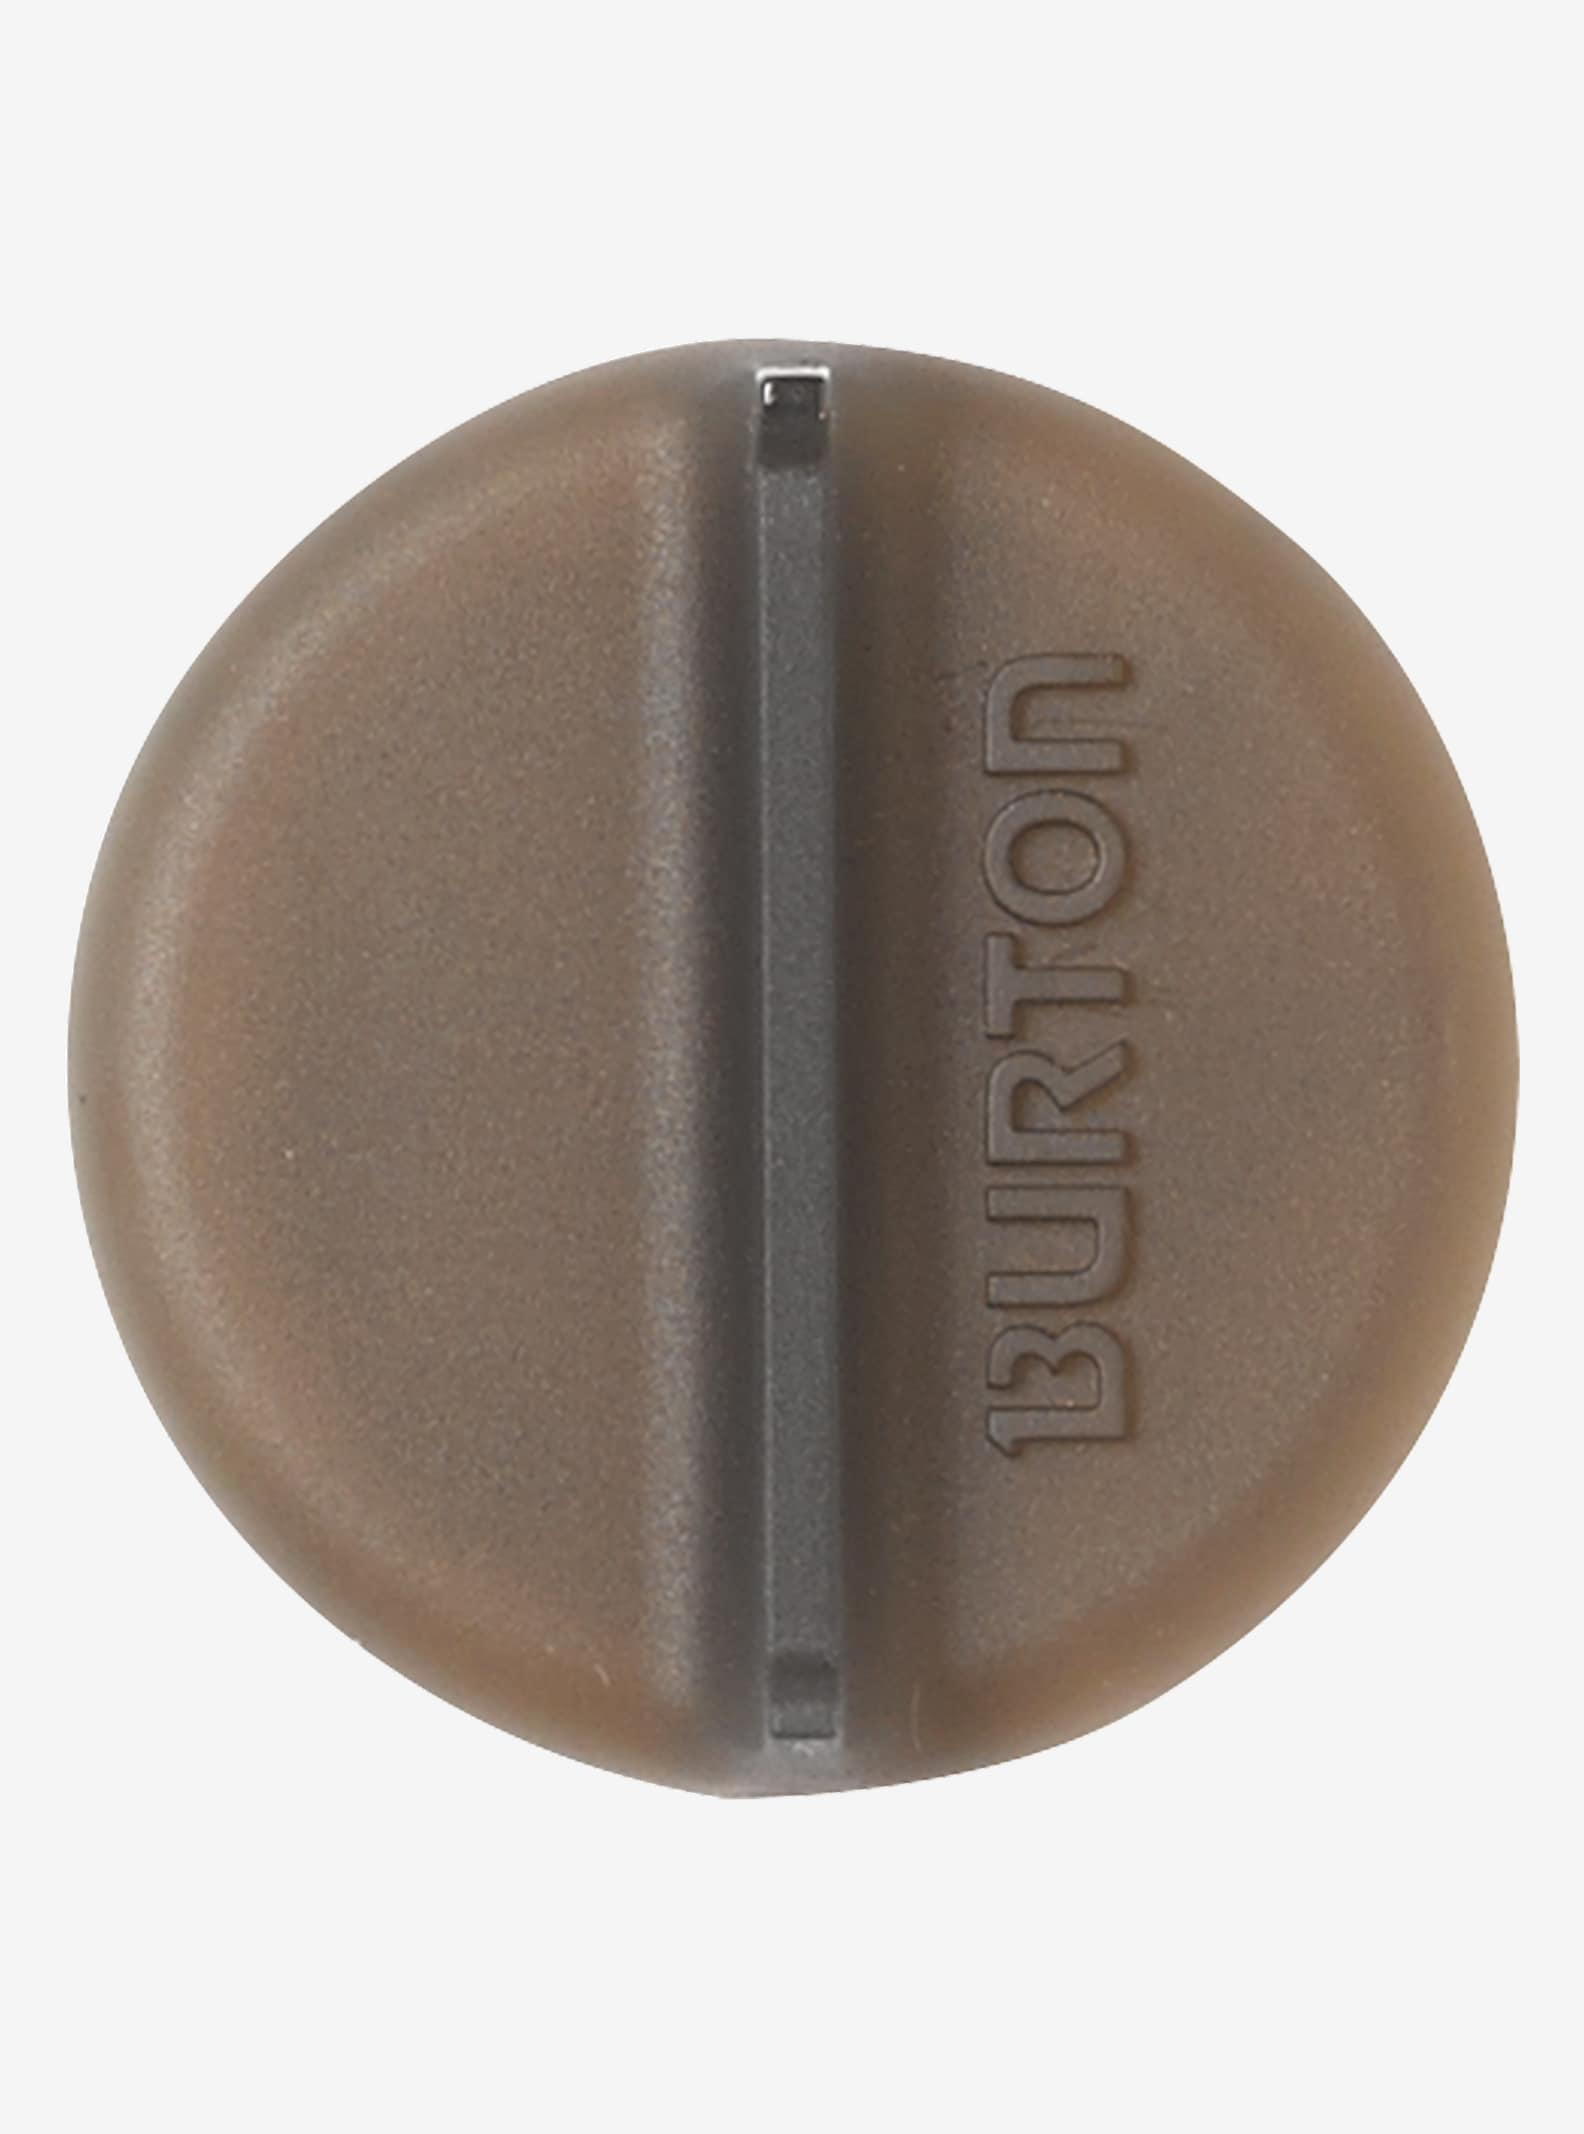 Burton Mini Scraper Stomp Pad shown in Translucent Black